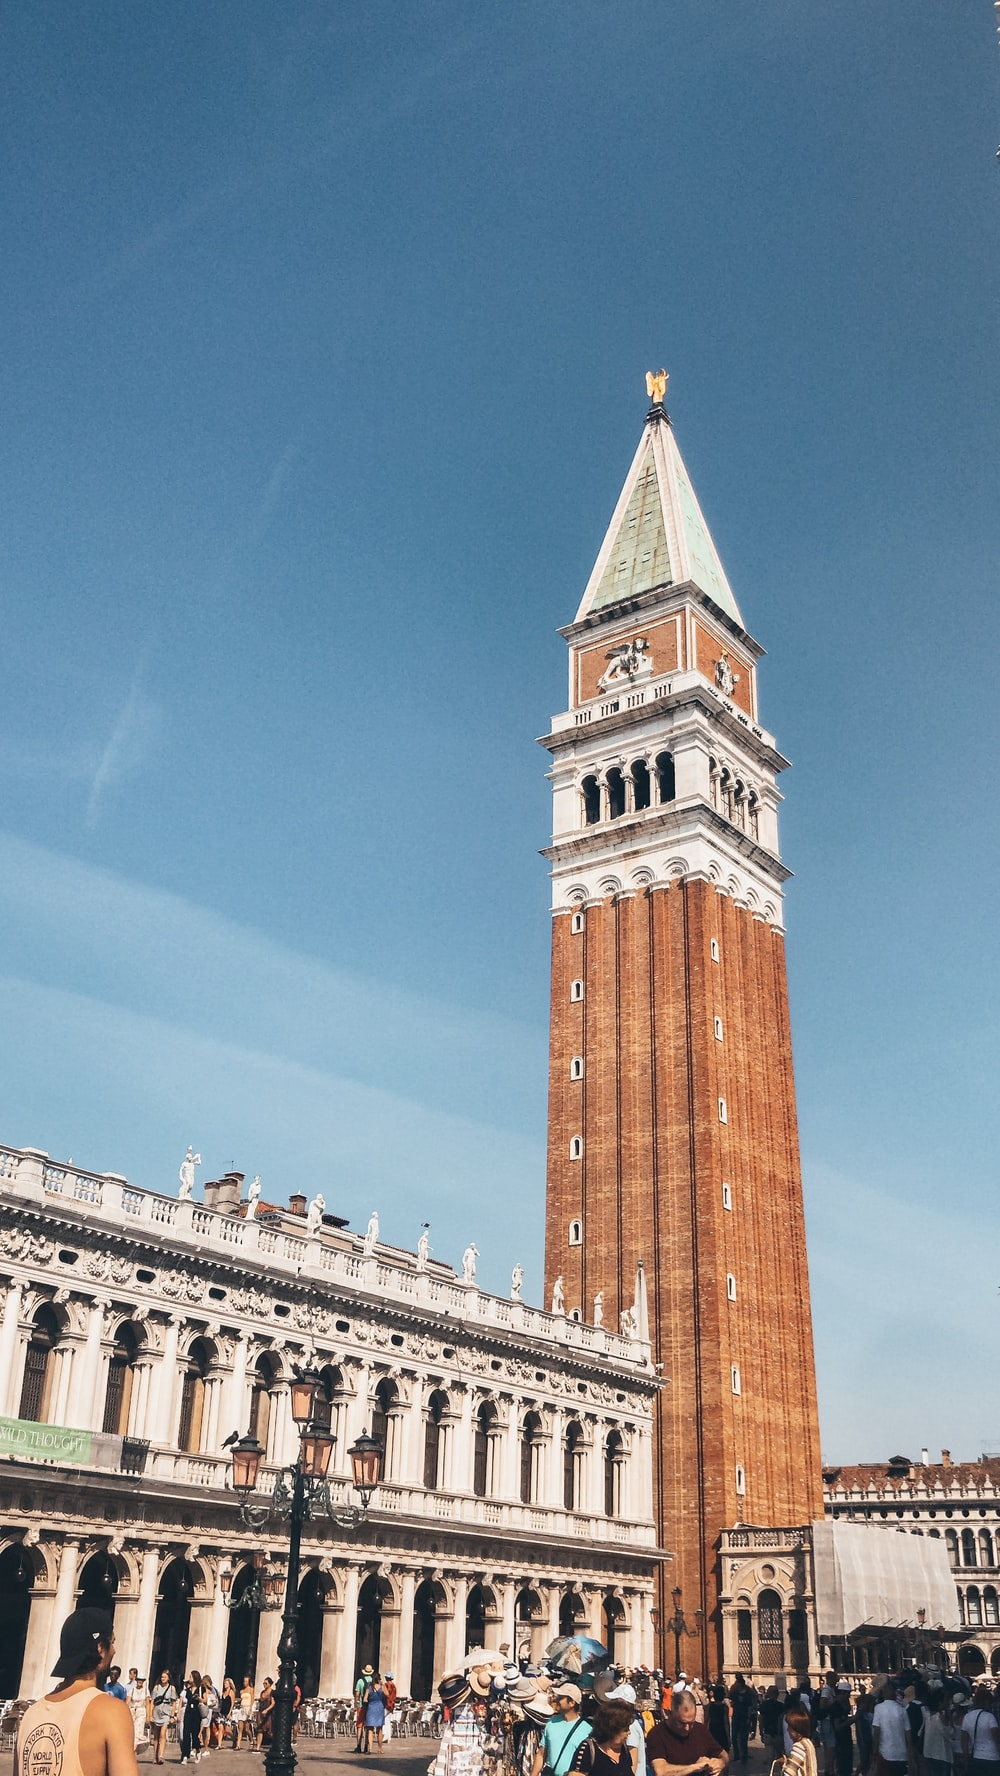 Piazza Tower, Italy